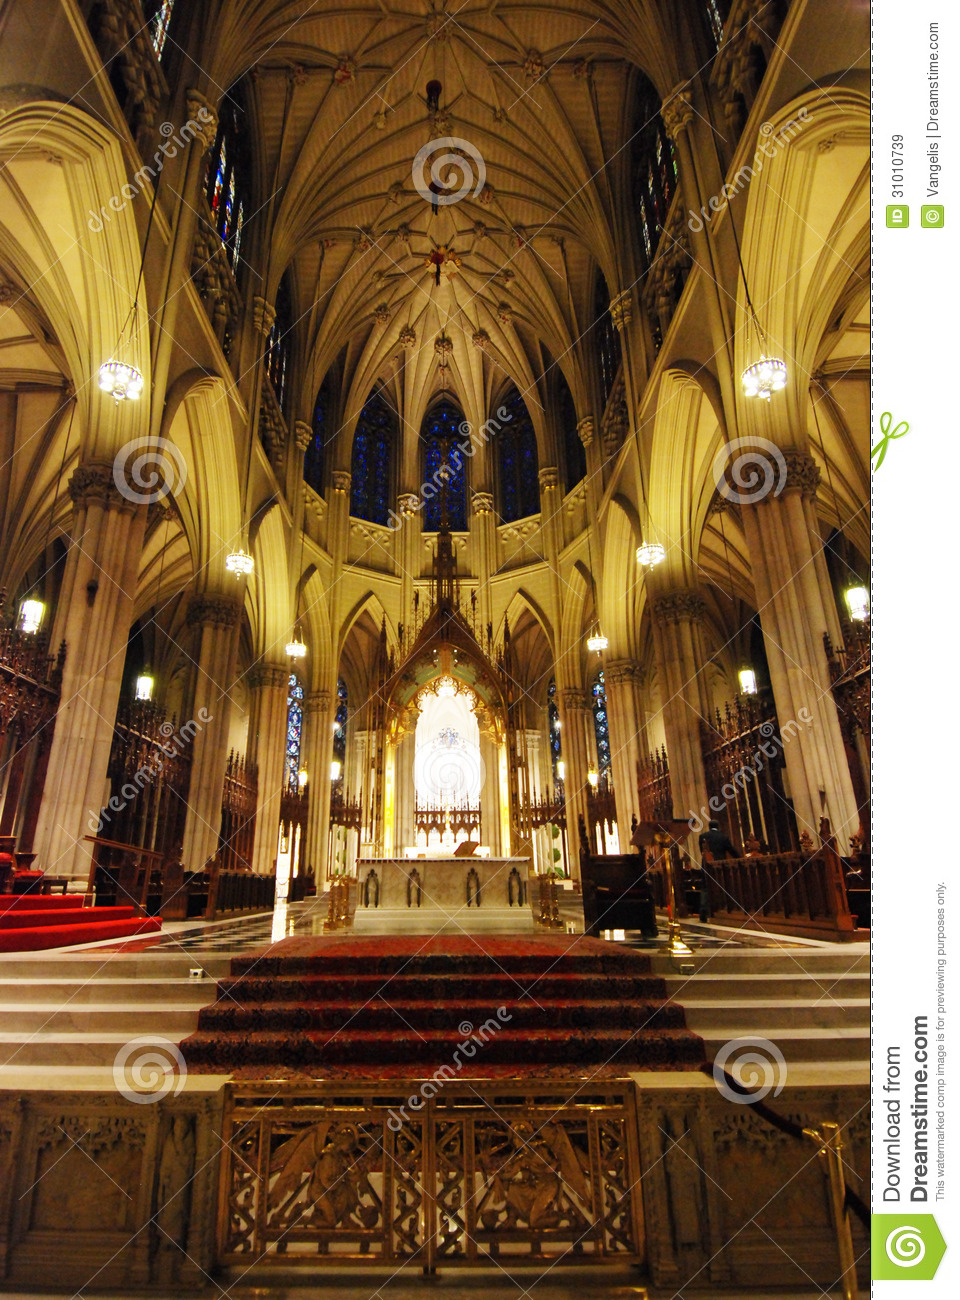 The Cathedral of St. Patrick